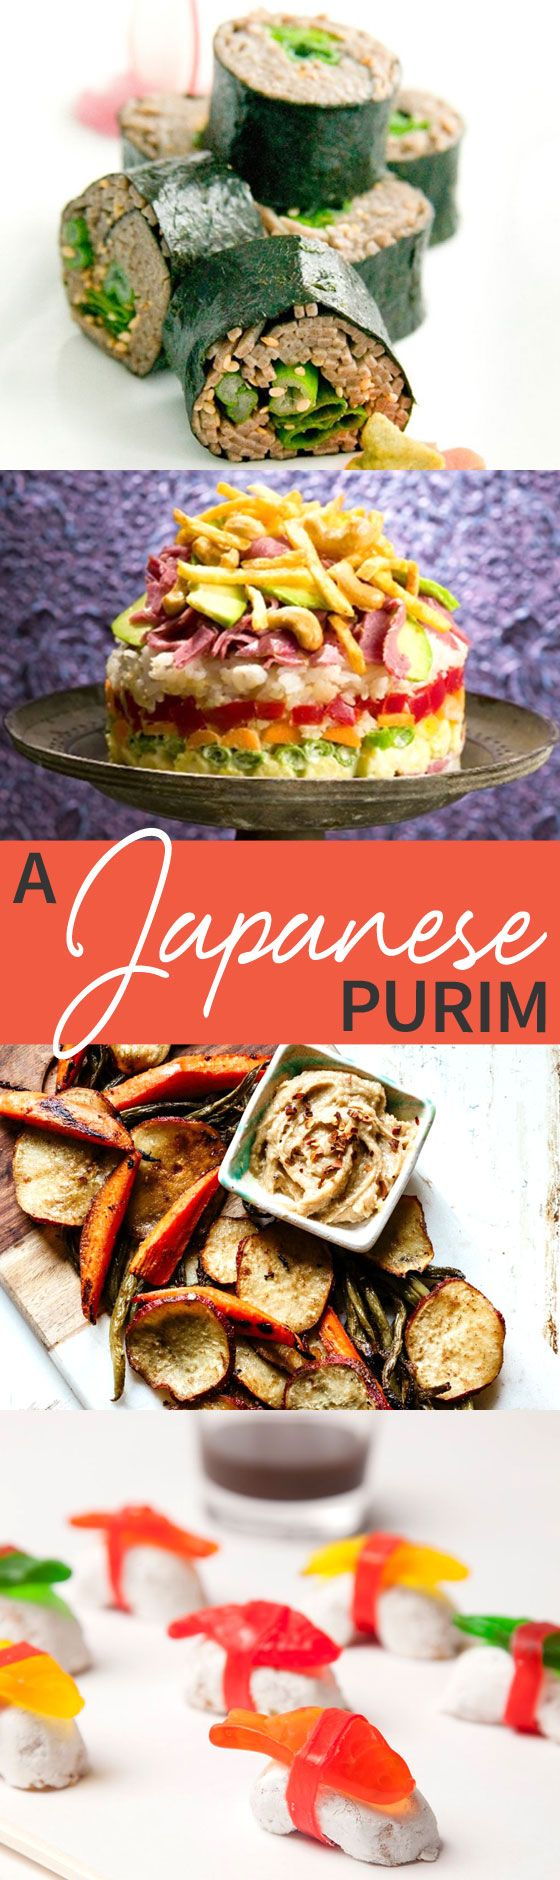 Get inspired and go beyond sushi mishloach manot with A Japanese Purim menu! http://www.joyofkosher.com/2016/03/a-japanese-purim/